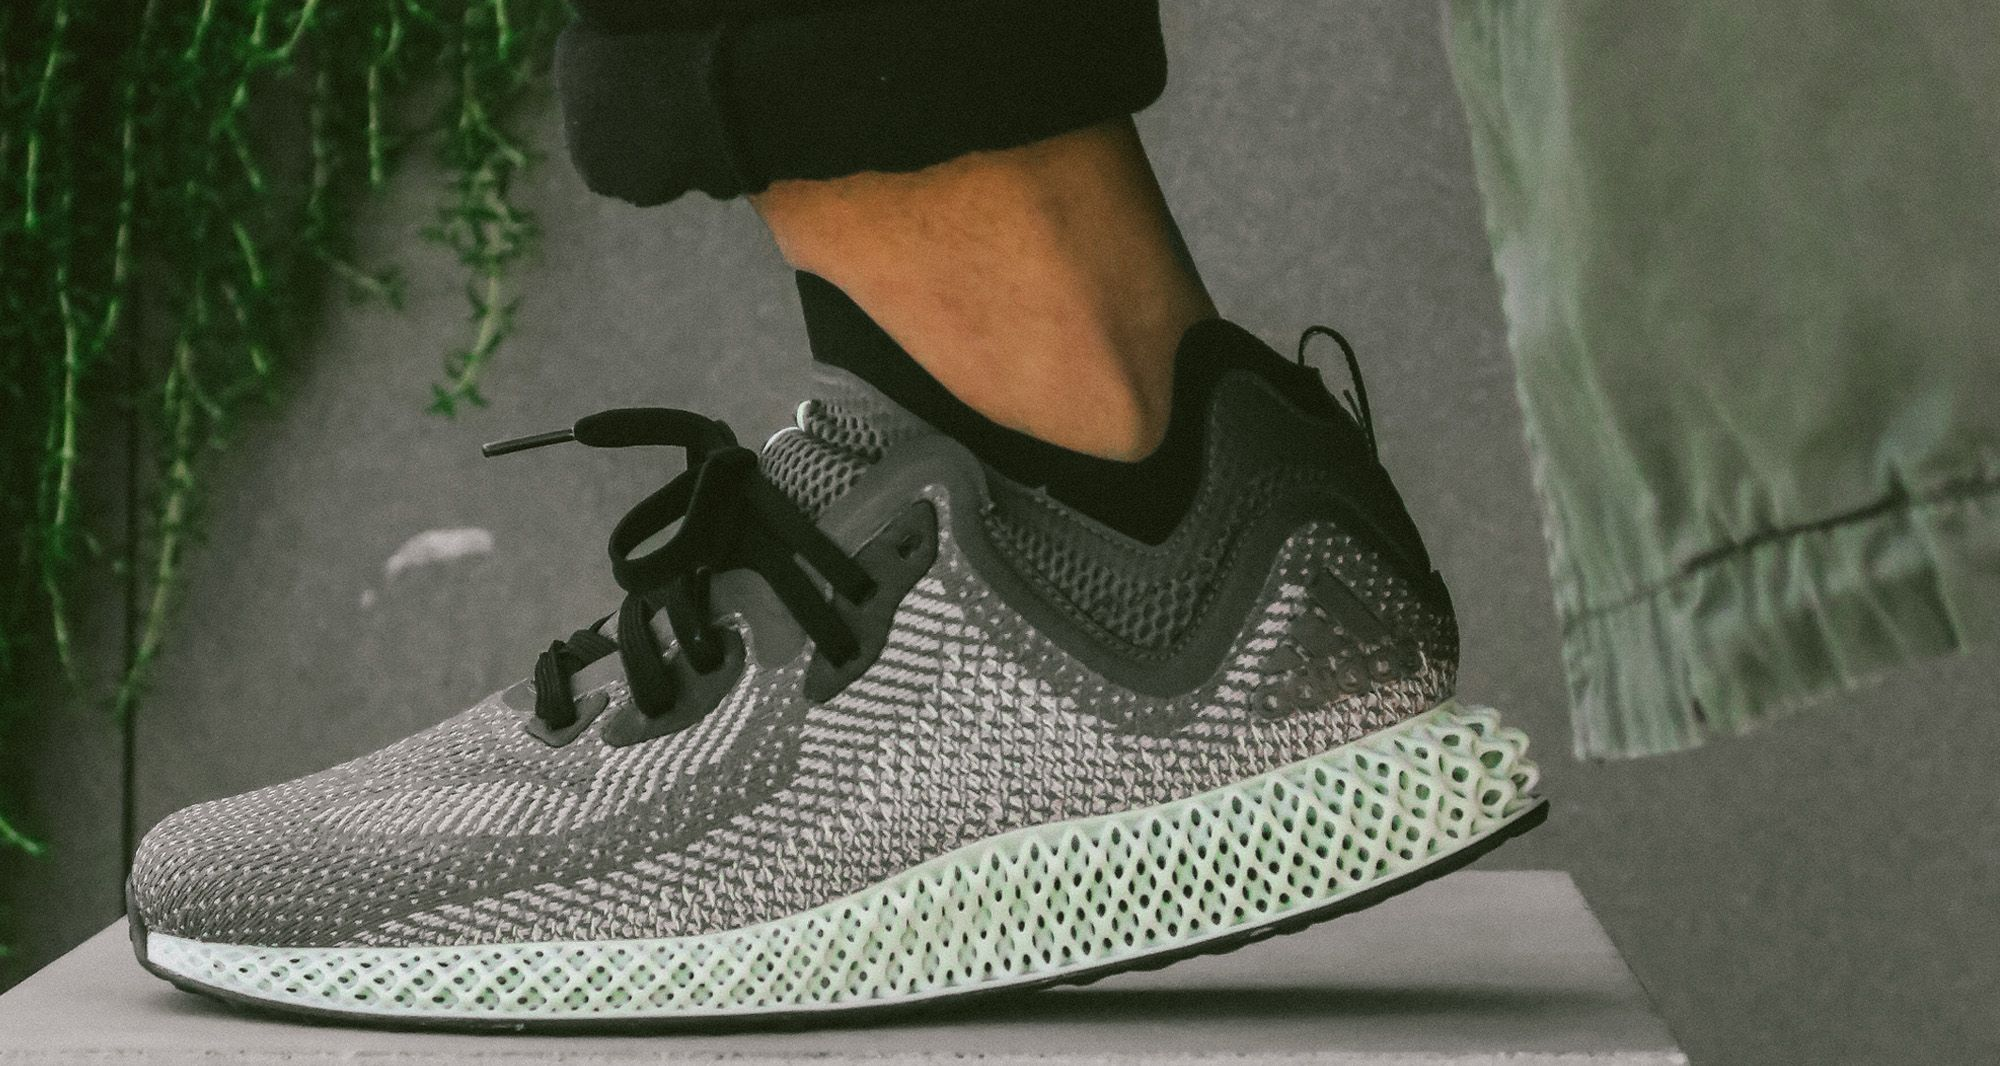 bd9ea881e Exclusive    Blending Streetwear   Performance with the adidas AlphaEDGE 4D  LTD